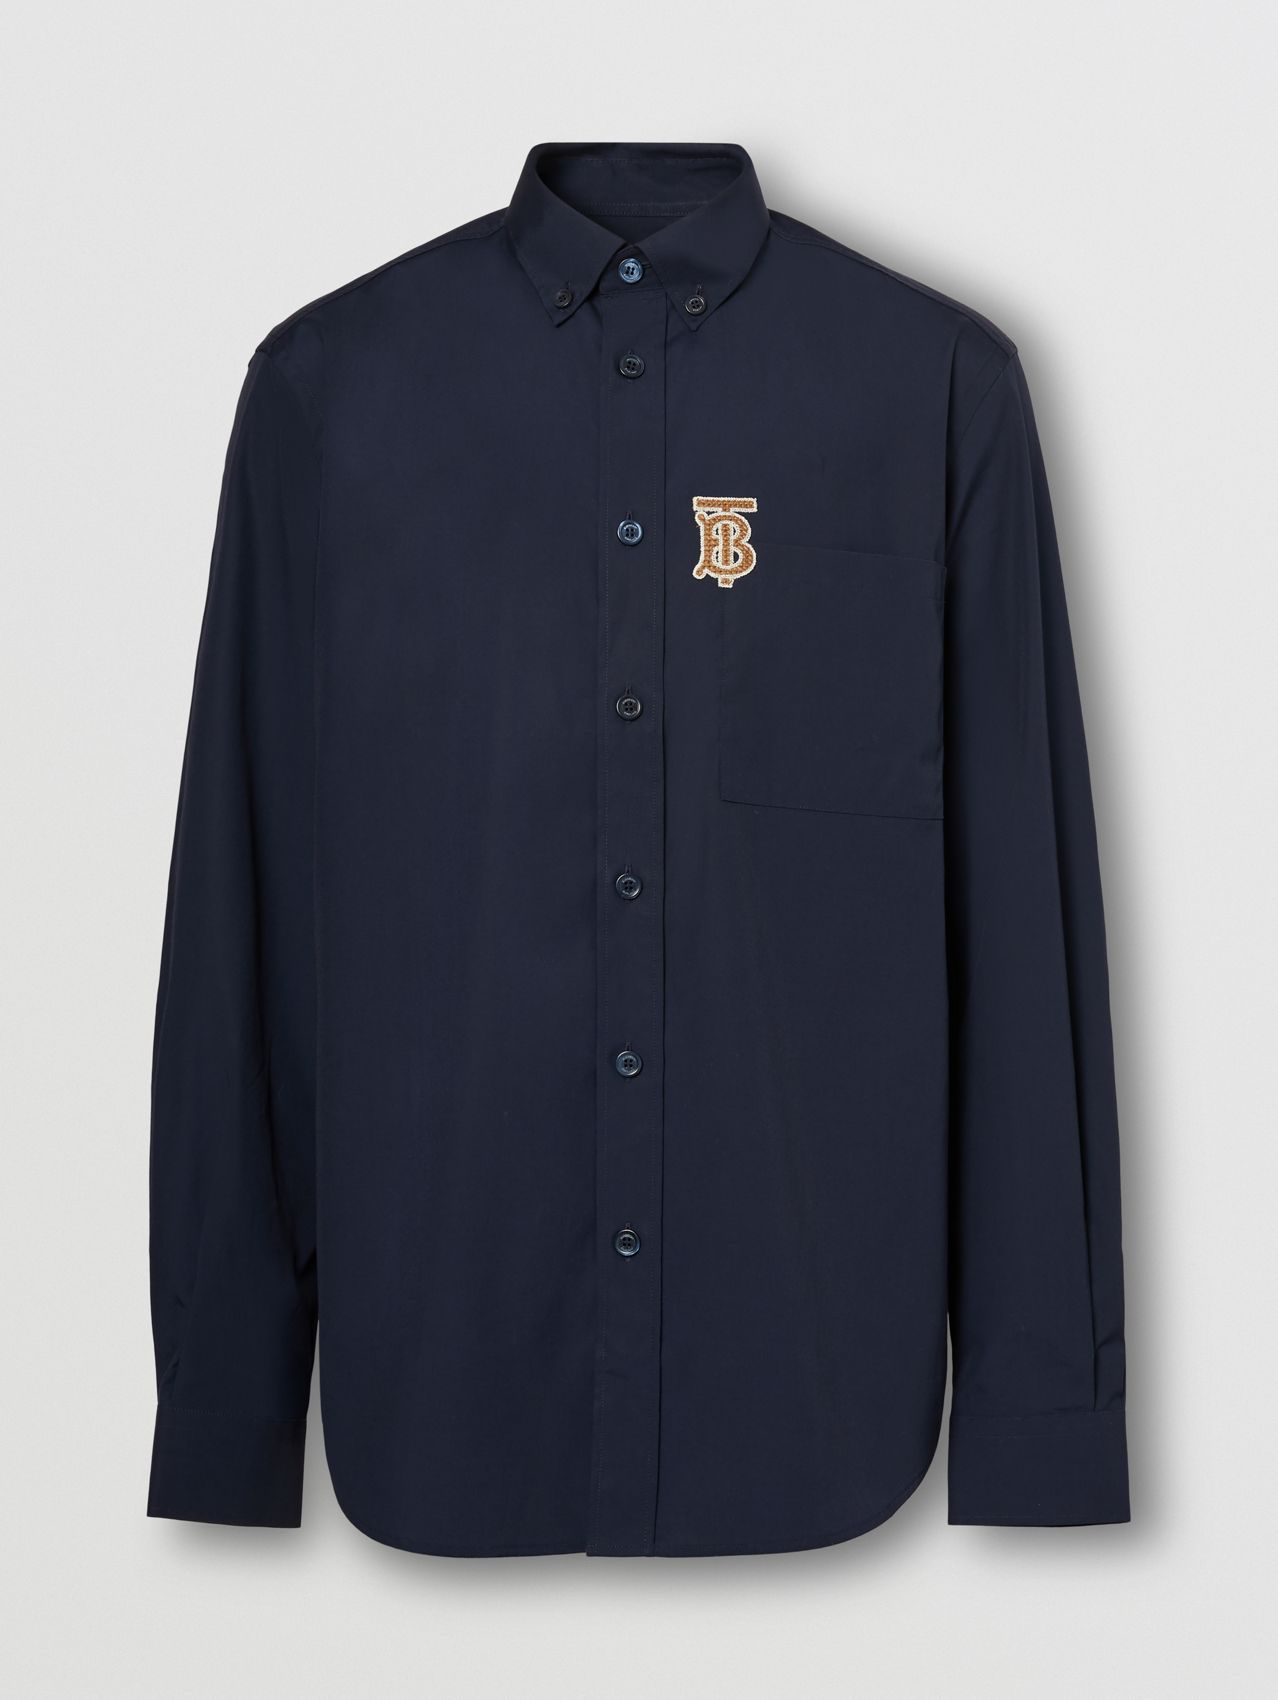 Monogrom Motif Stretch Cotton Poplin Shirt in Navy